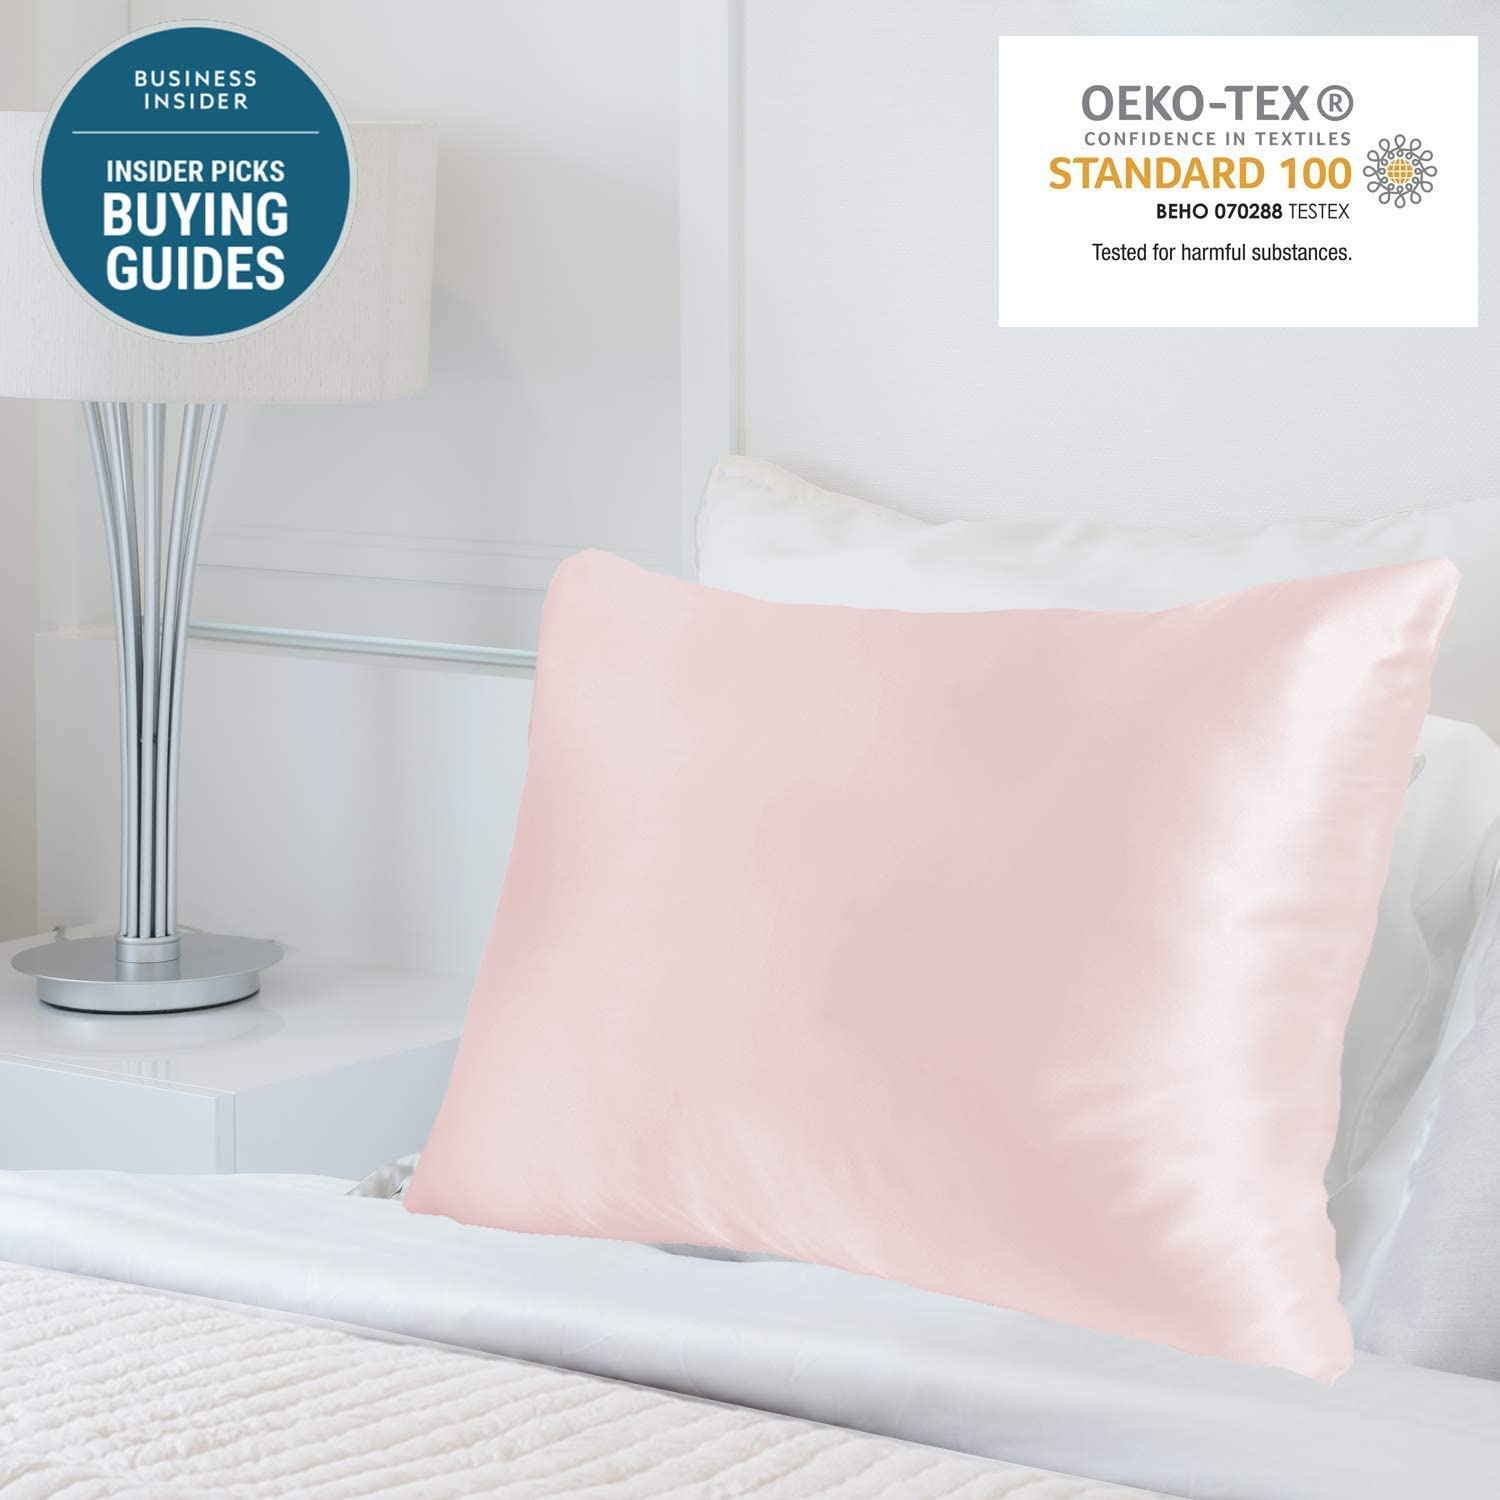 MYK Silk 25 Momme Luxury Mulberry Silk Pillowcase, Oeko-TEX Certified, Hypoallegernic, Hair and Skin Care, Curly Friendly Essentials, Pink, King